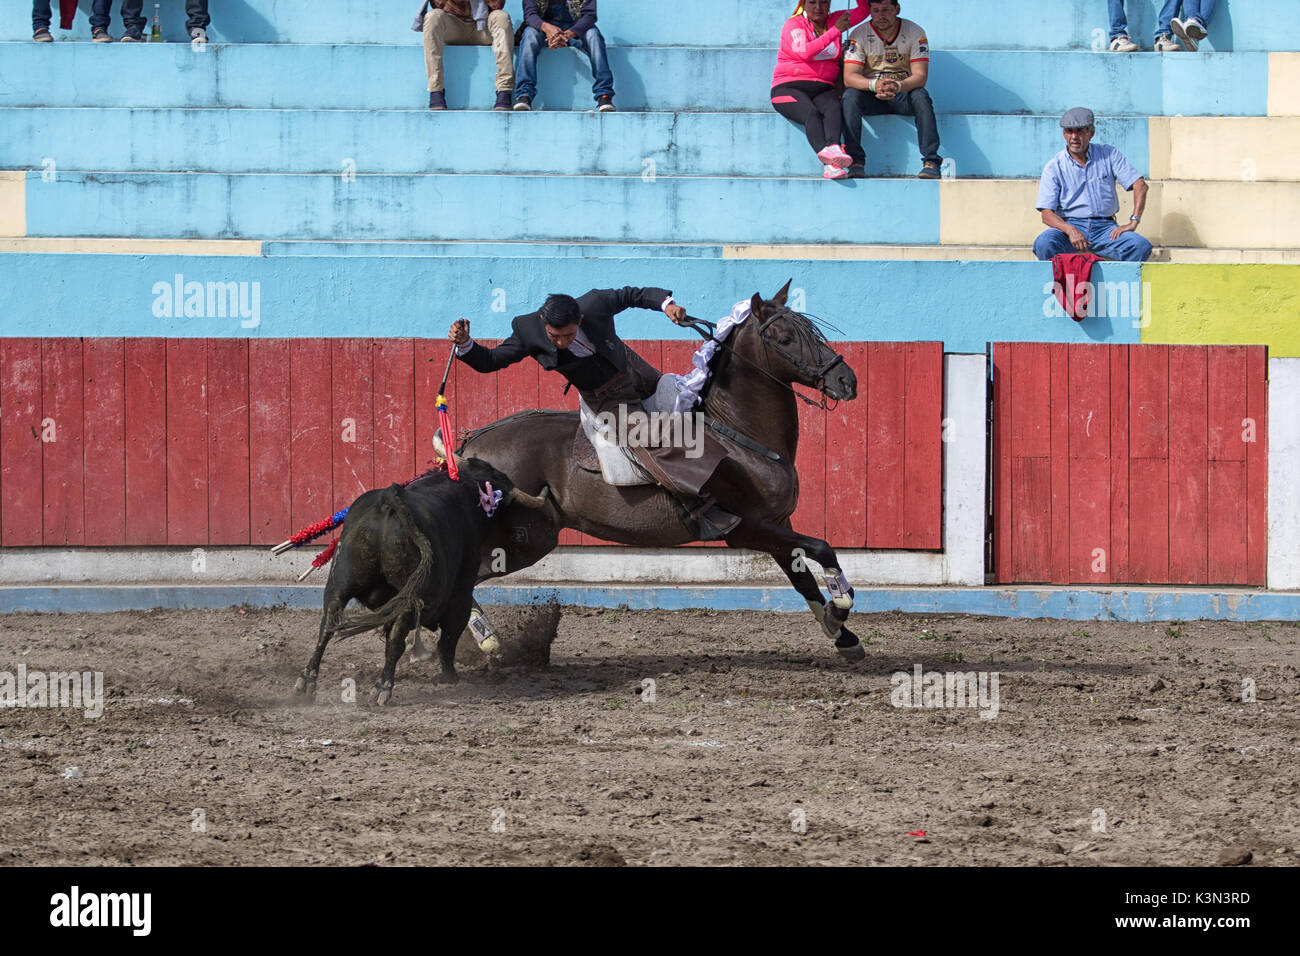 June 18, 2017, Pujili, Ecuador: a bullfighter riding his horse in the arena leaning towards the bull and stabbing with harpoon - Stock Image